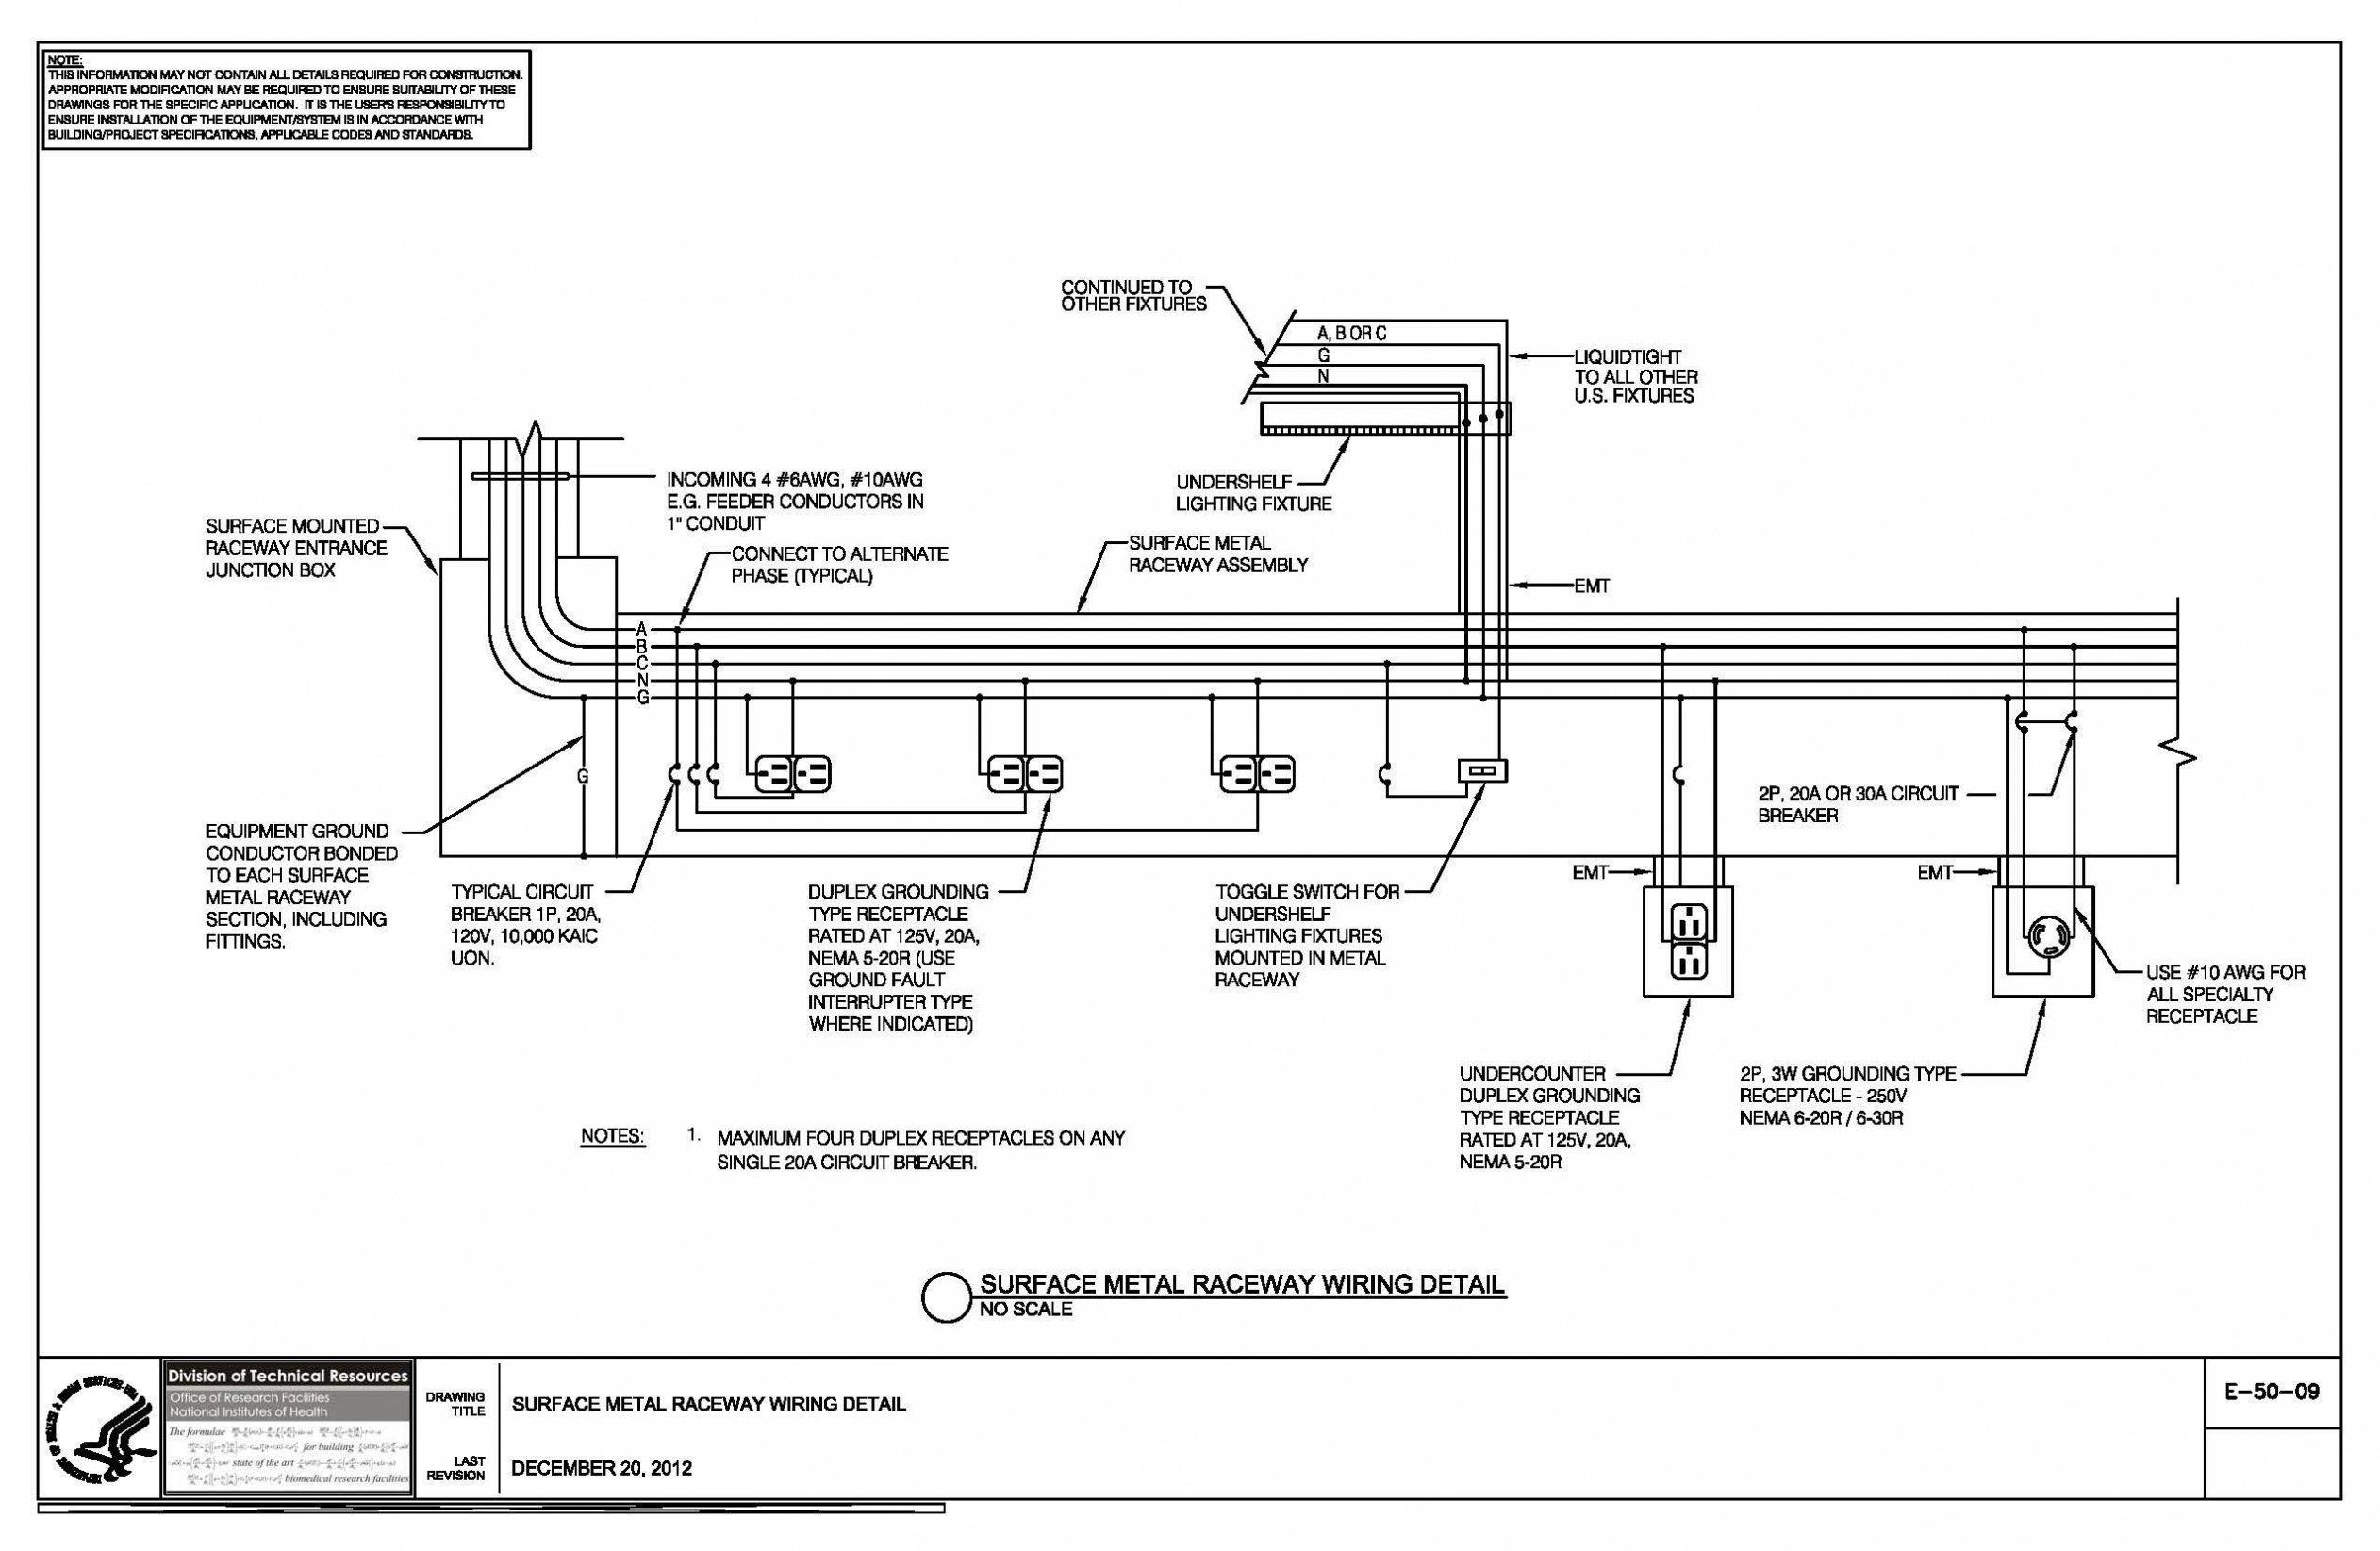 automotive electrical wiring diagram Download-Wiring Diagram In Building 2019 Got A Wiring Diagram From Http Wikidiyfaqorguk 0 0d S Wire 18-e